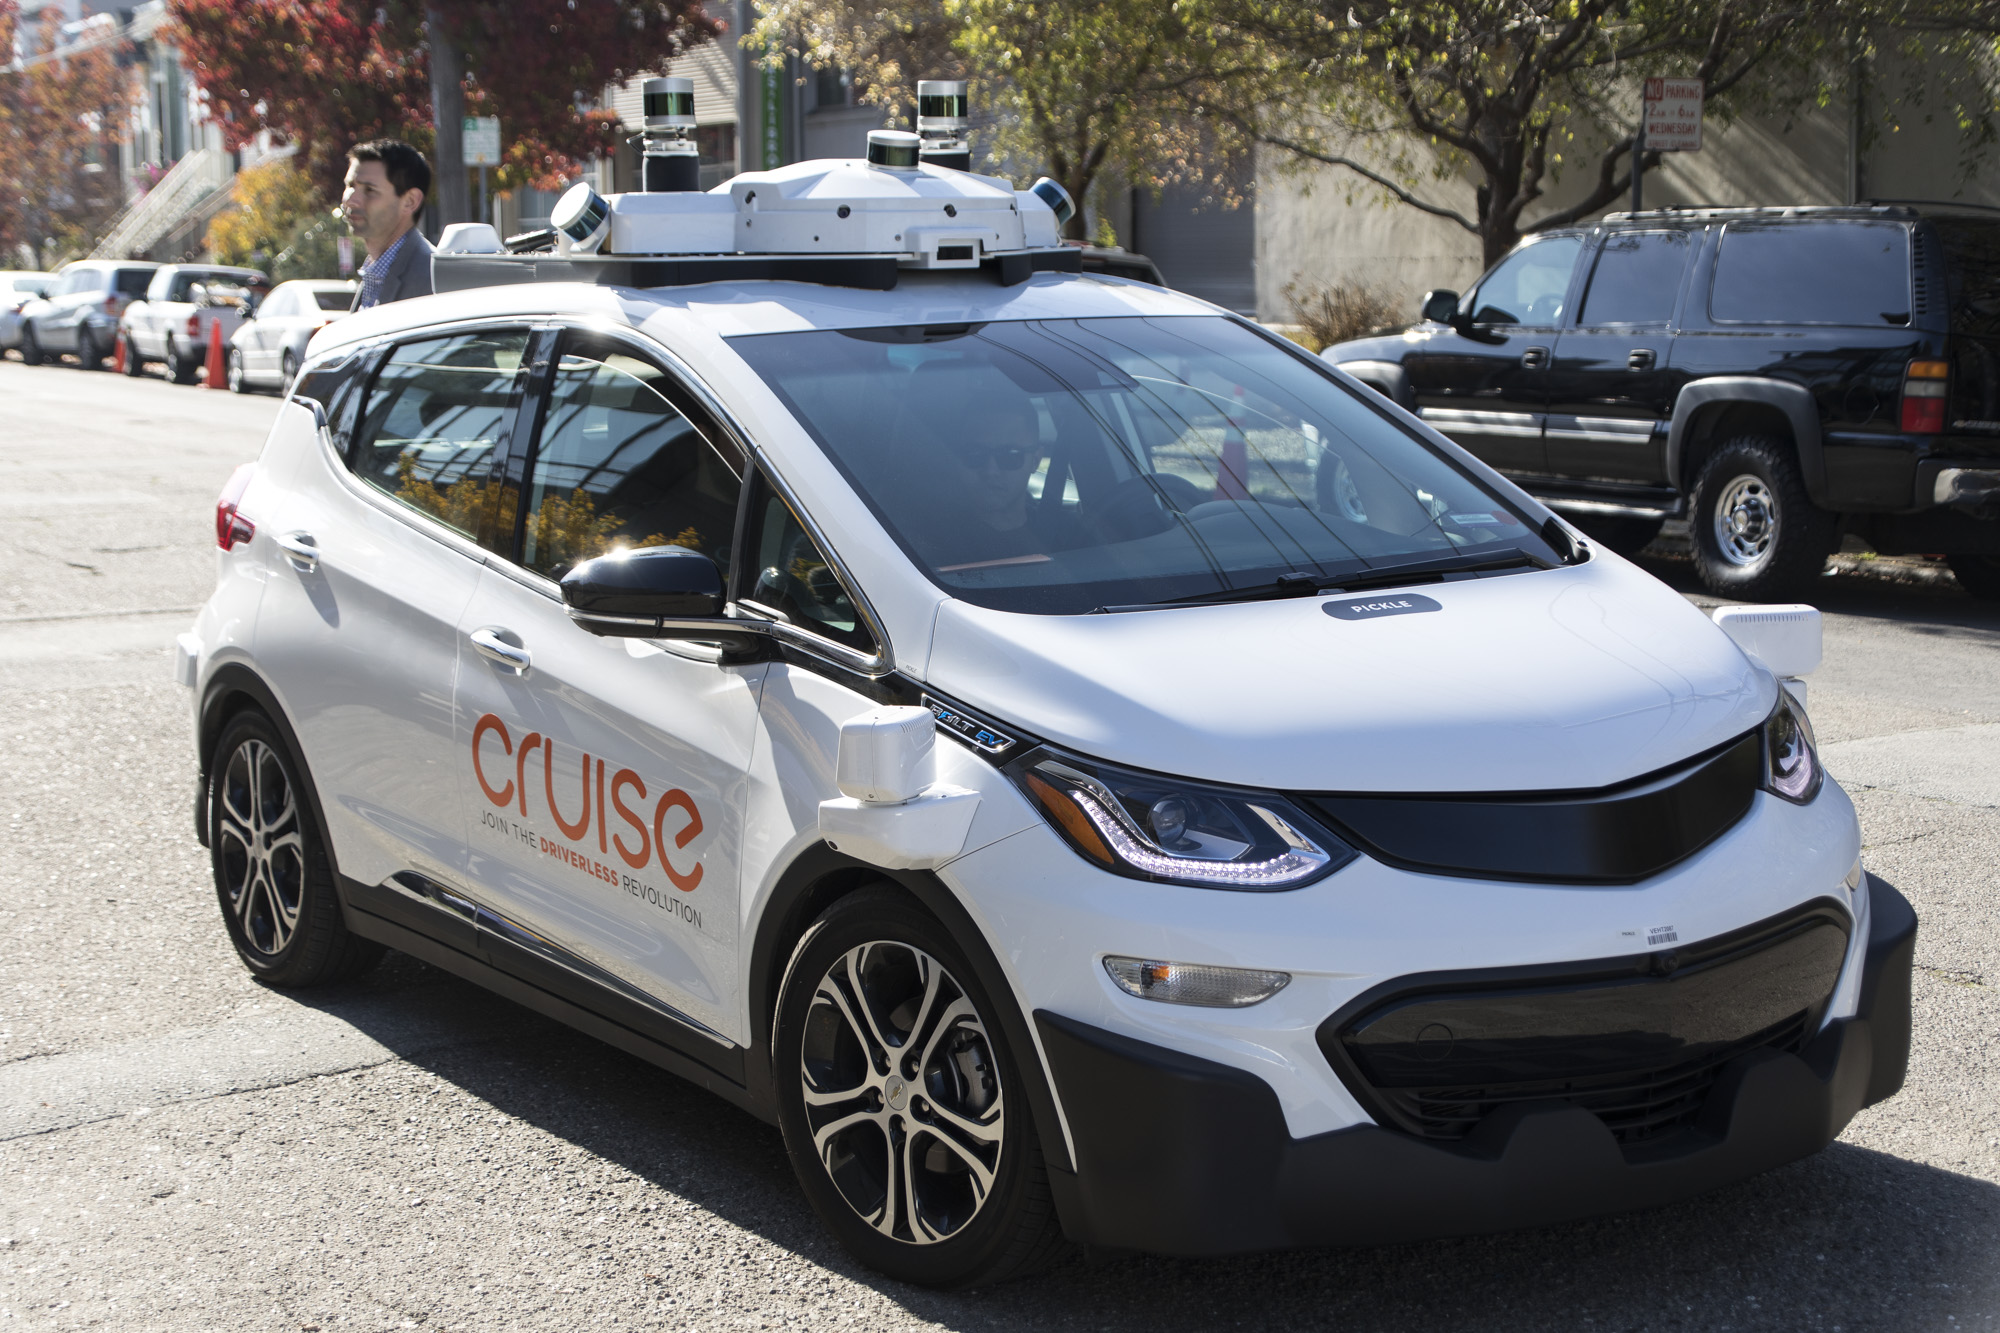 GM Cruise self-driving vehicle company gets $2.25 billion investment